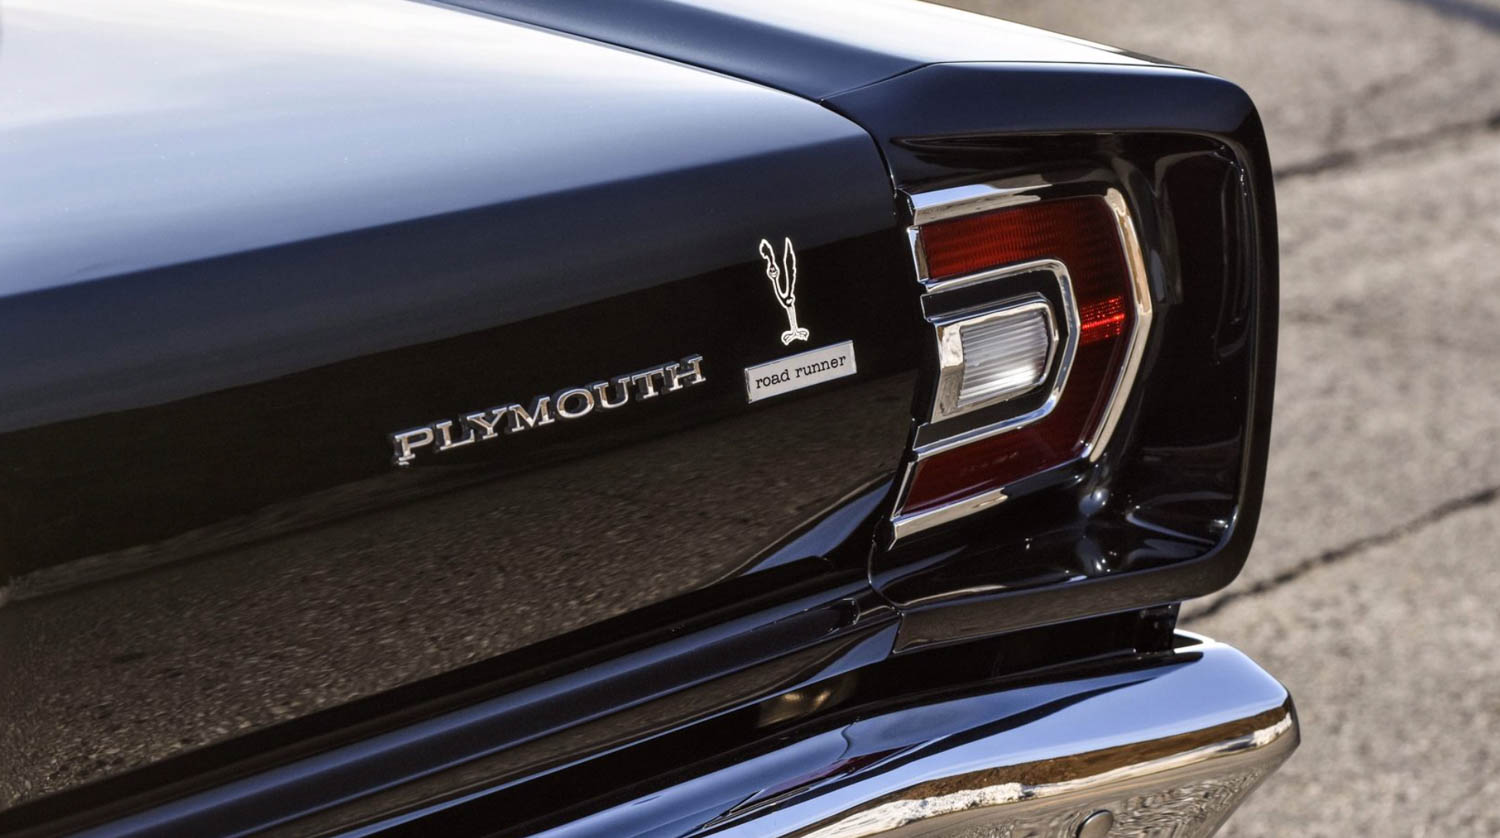 1968 Plymouth Road Runner decal